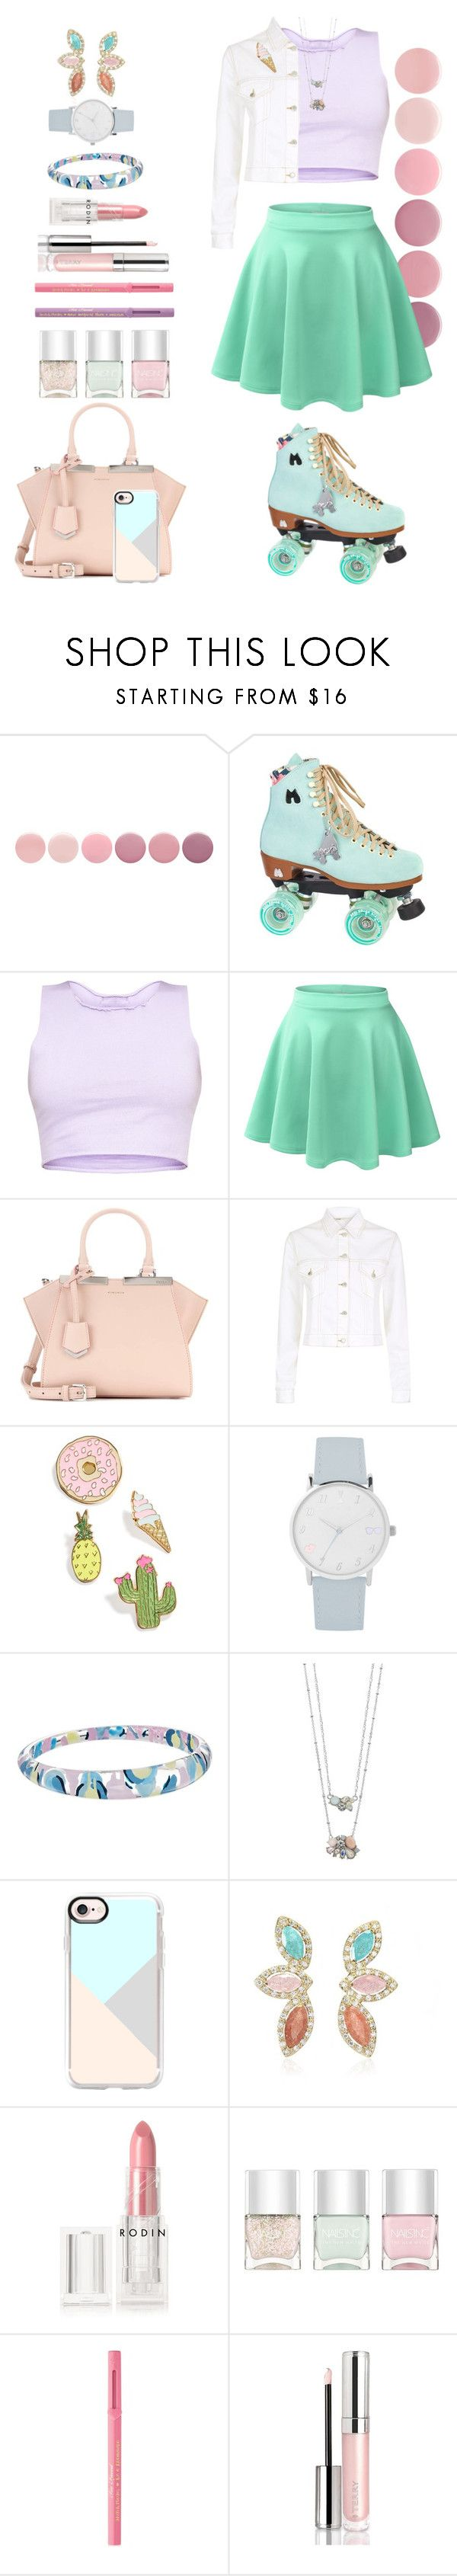 """Pastel Roller Skating"" by allyssister ❤ liked on Polyvore featuring Deborah Lippmann, Moxi, LE3NO, Fendi, Maje, Celebrate Shop, A.X.N.Y., Alexis Bittar, LC Lauren Conrad and Casetify"